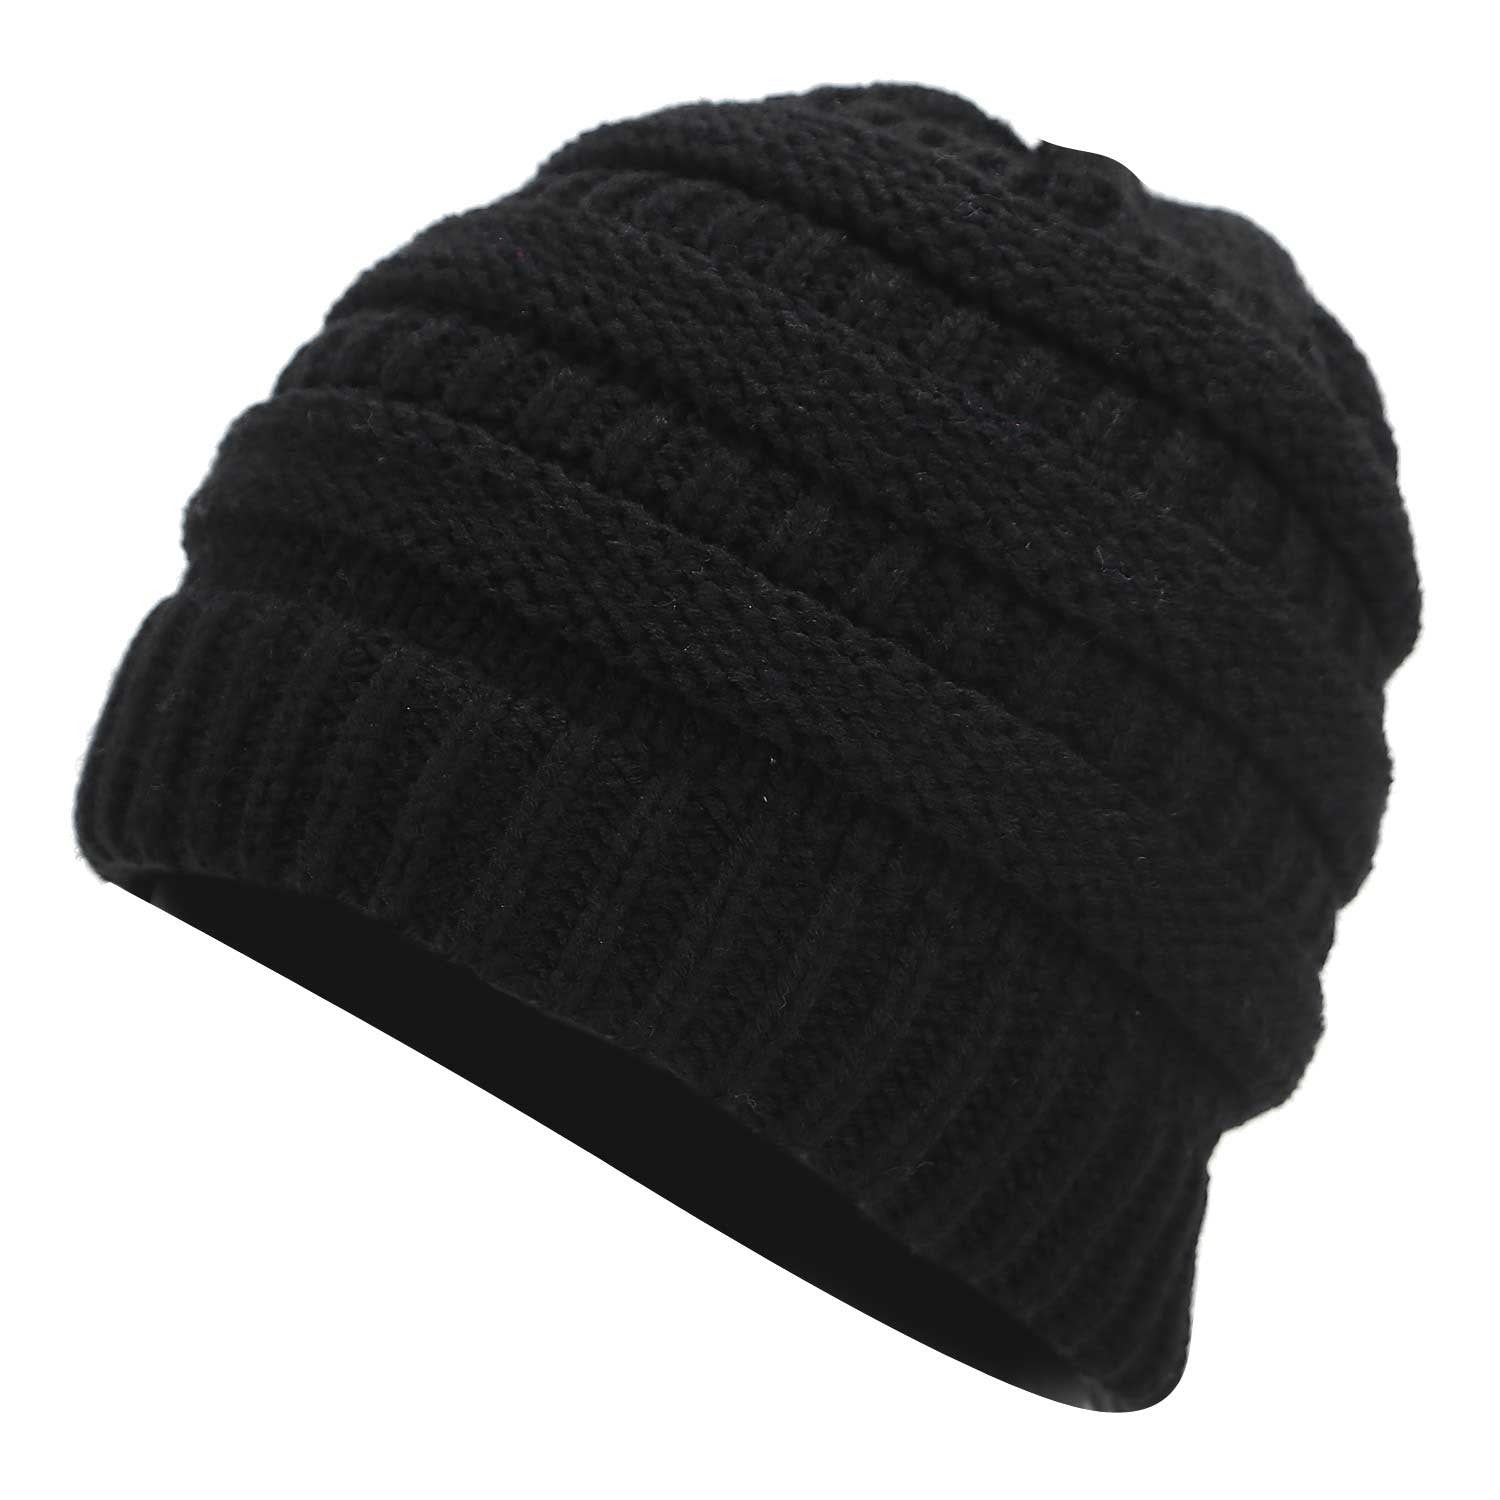 a5188dcf4 Ponytail Beanie Hat Winter Skullies Beanies Warm Caps Female Knitted  Stylish Hats For Ladies Fashion